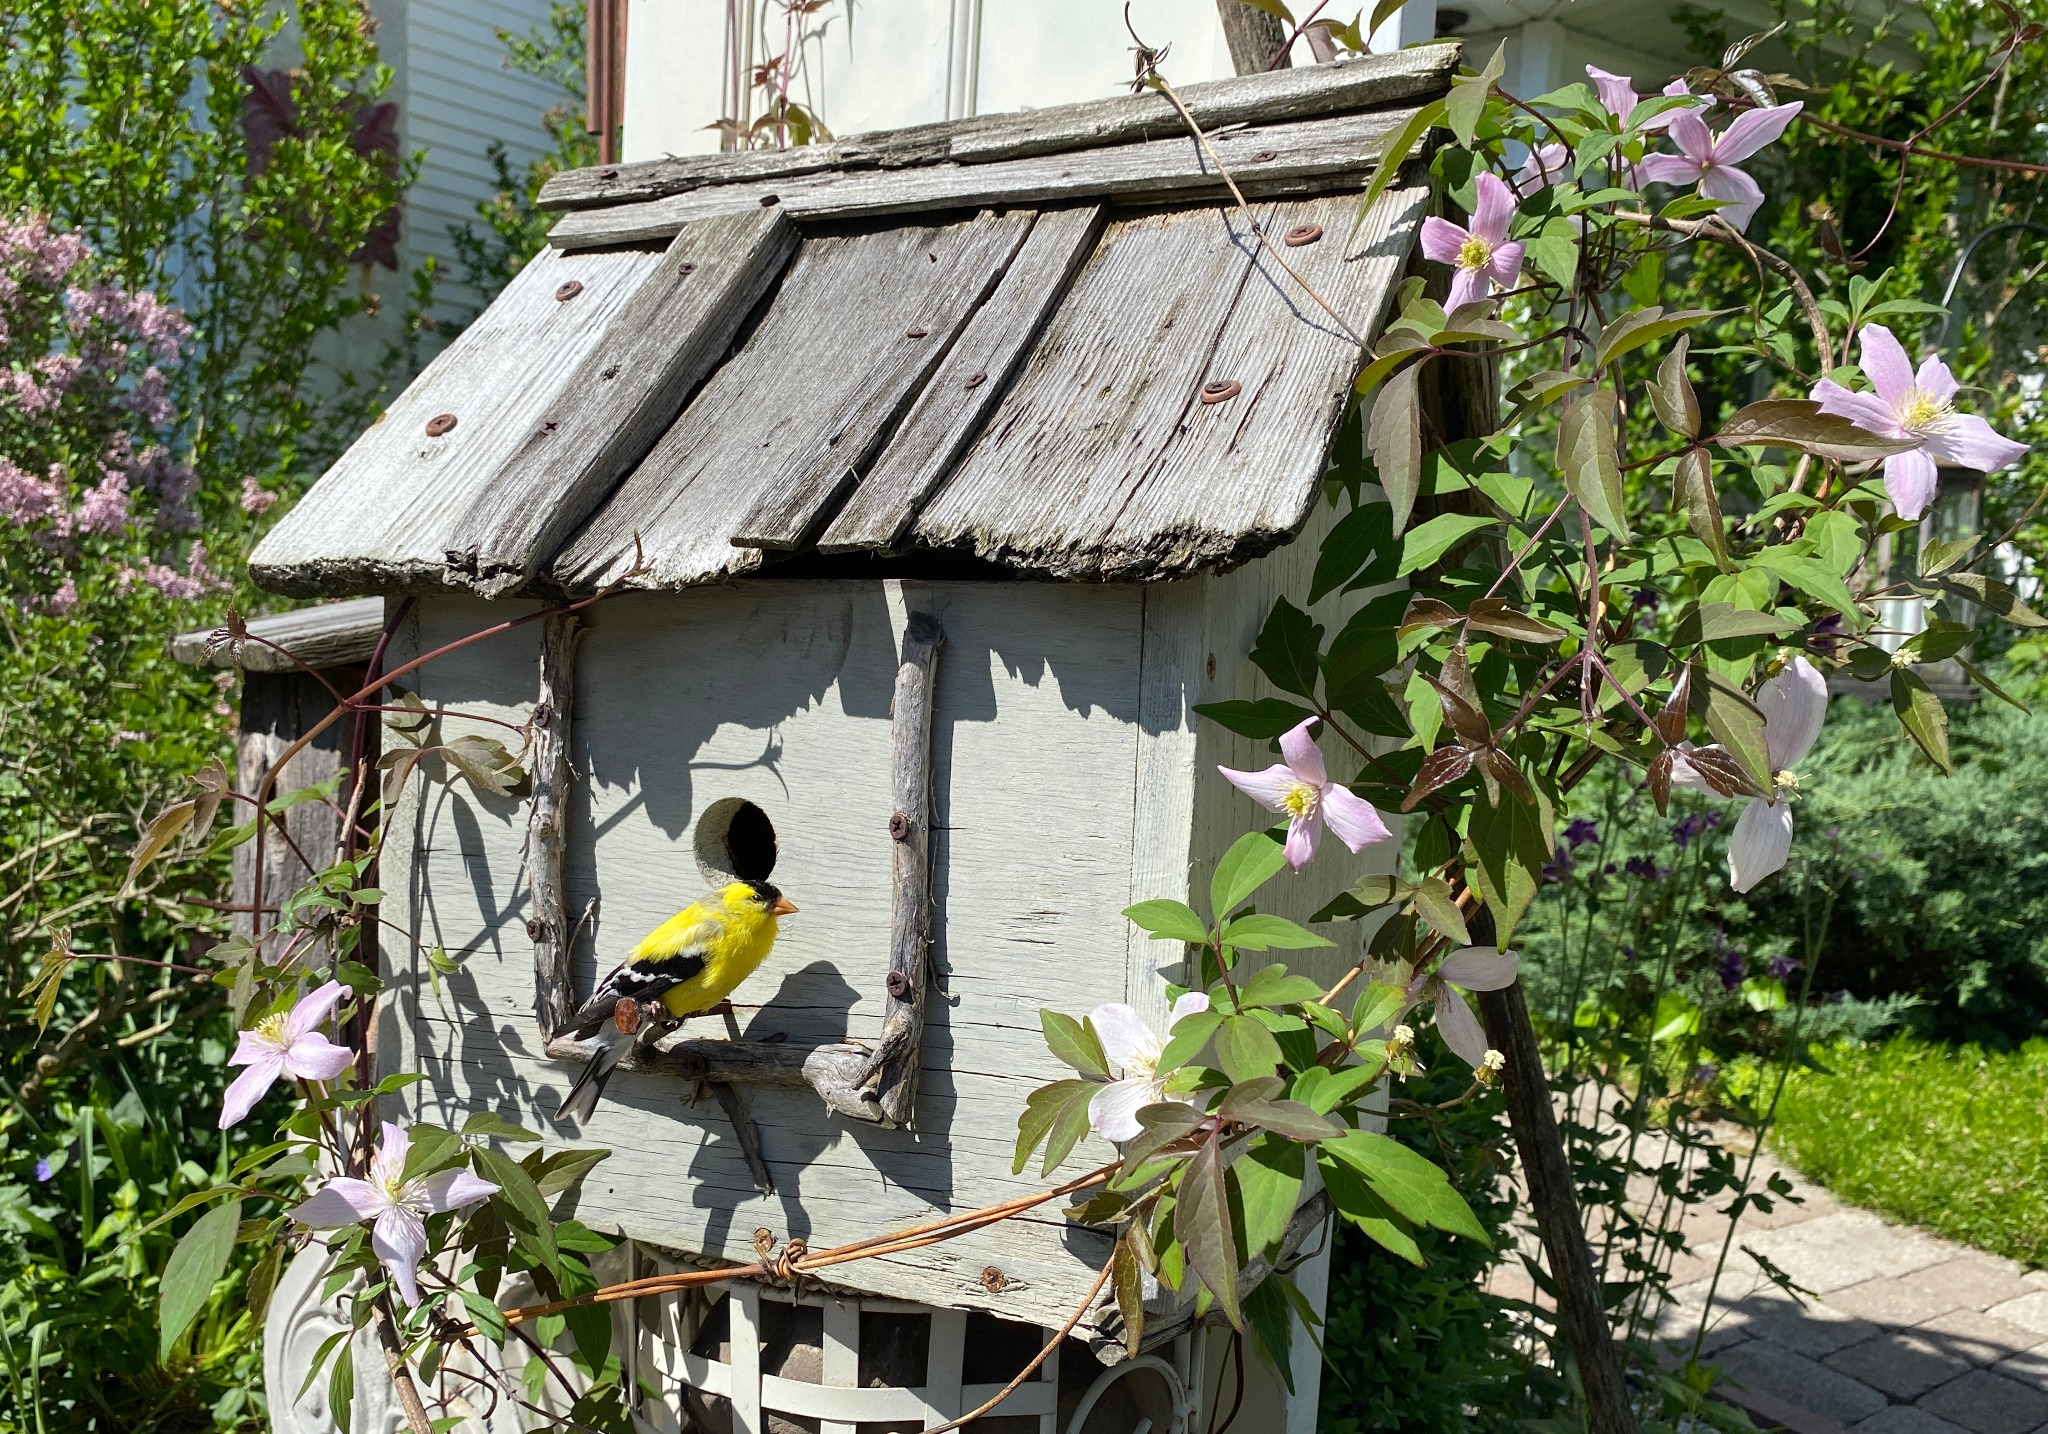 Live Birdhouse Workshop on Zoom ~ Sat. Feb 27 11am -4pm and Sun. Feb 28th 1:00- 2:30